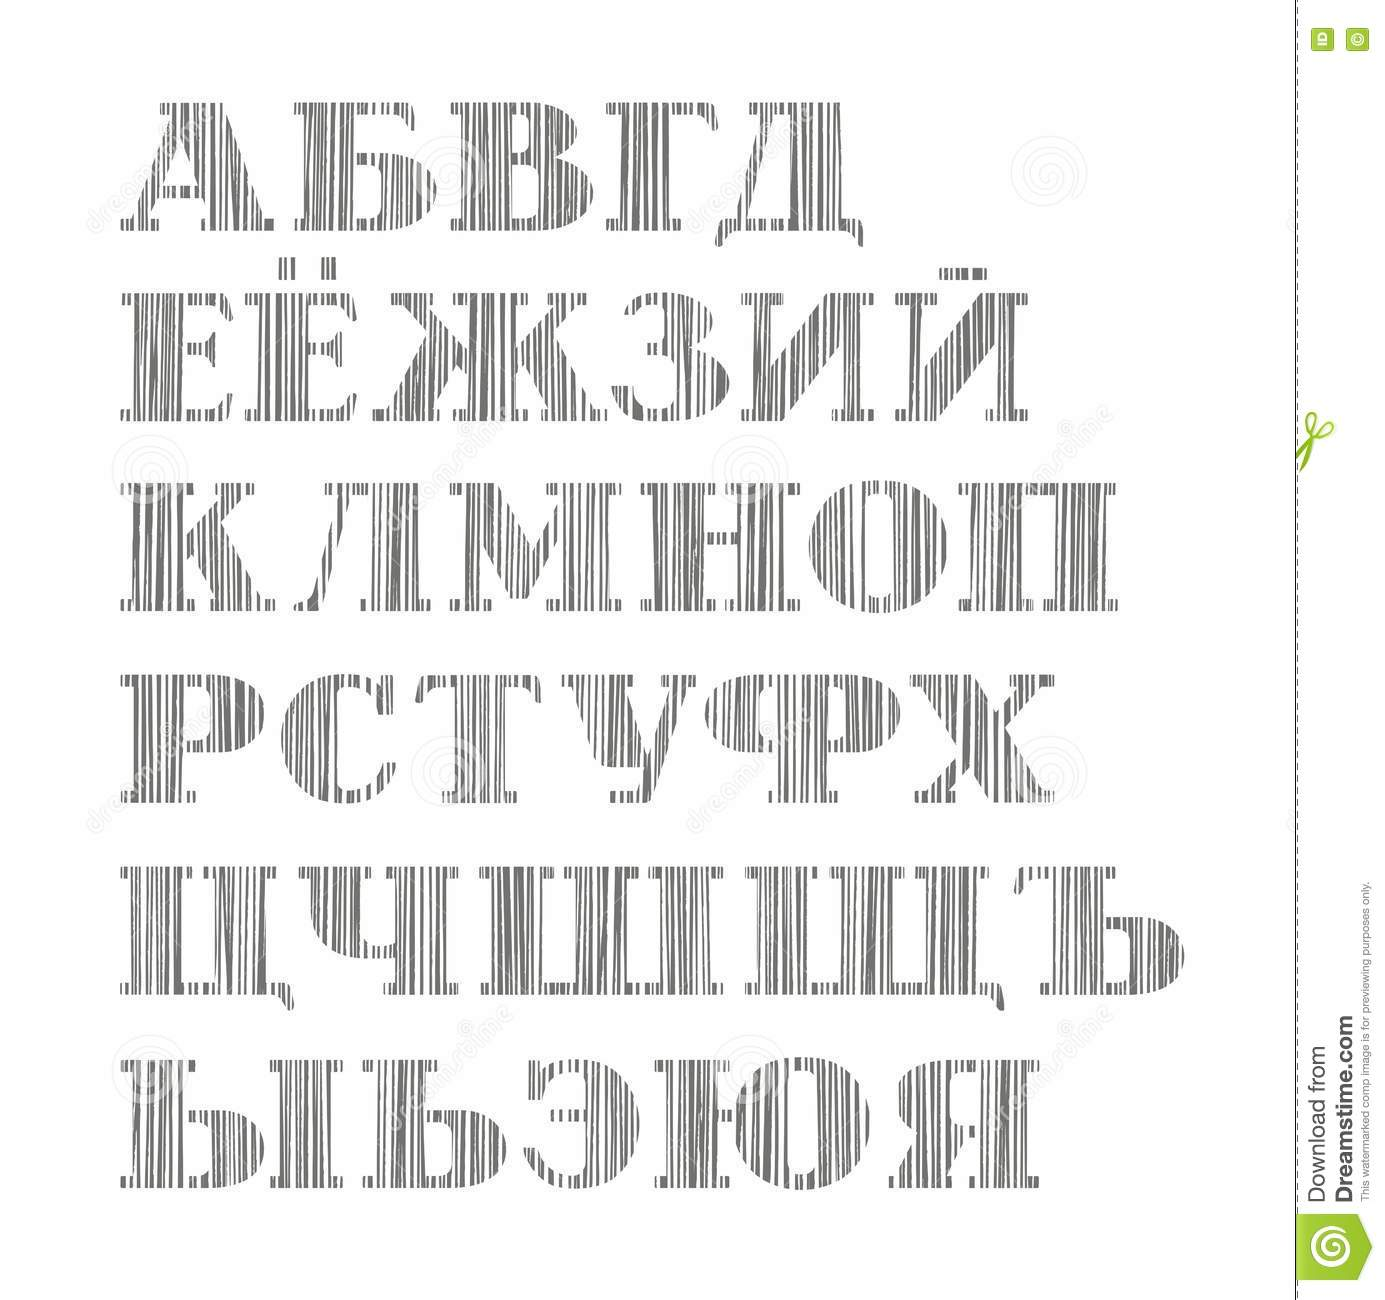 Russian Alphabet In Capital Letters The Vertical Shading